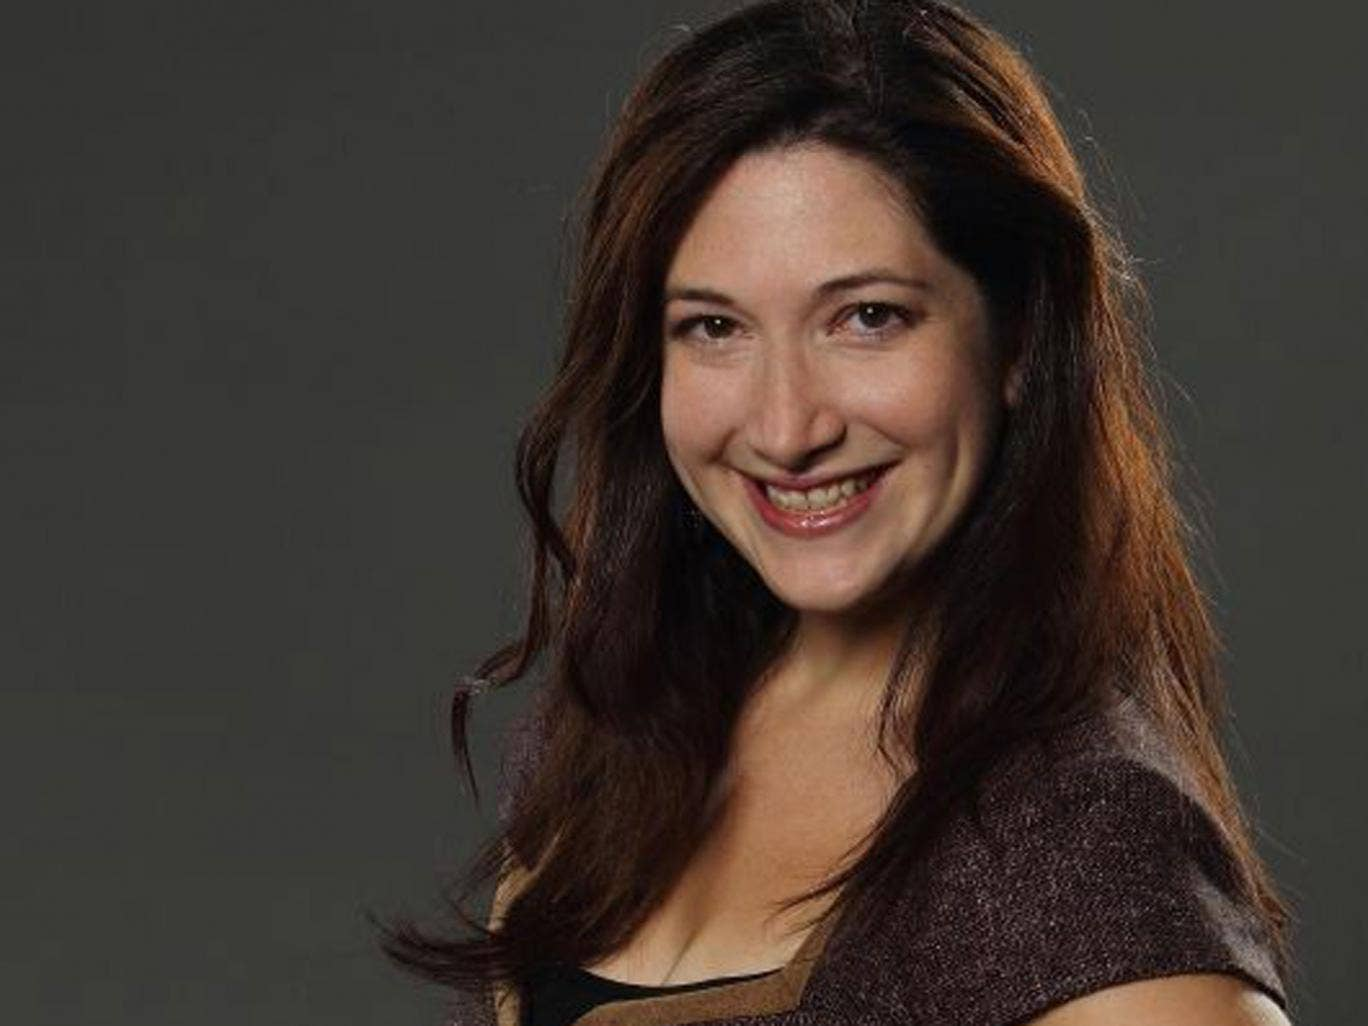 Randi Zuckerberg presented a Top 10 of ideas to open Broadway up, including YouTube auditions and crowd-sourcing costumes